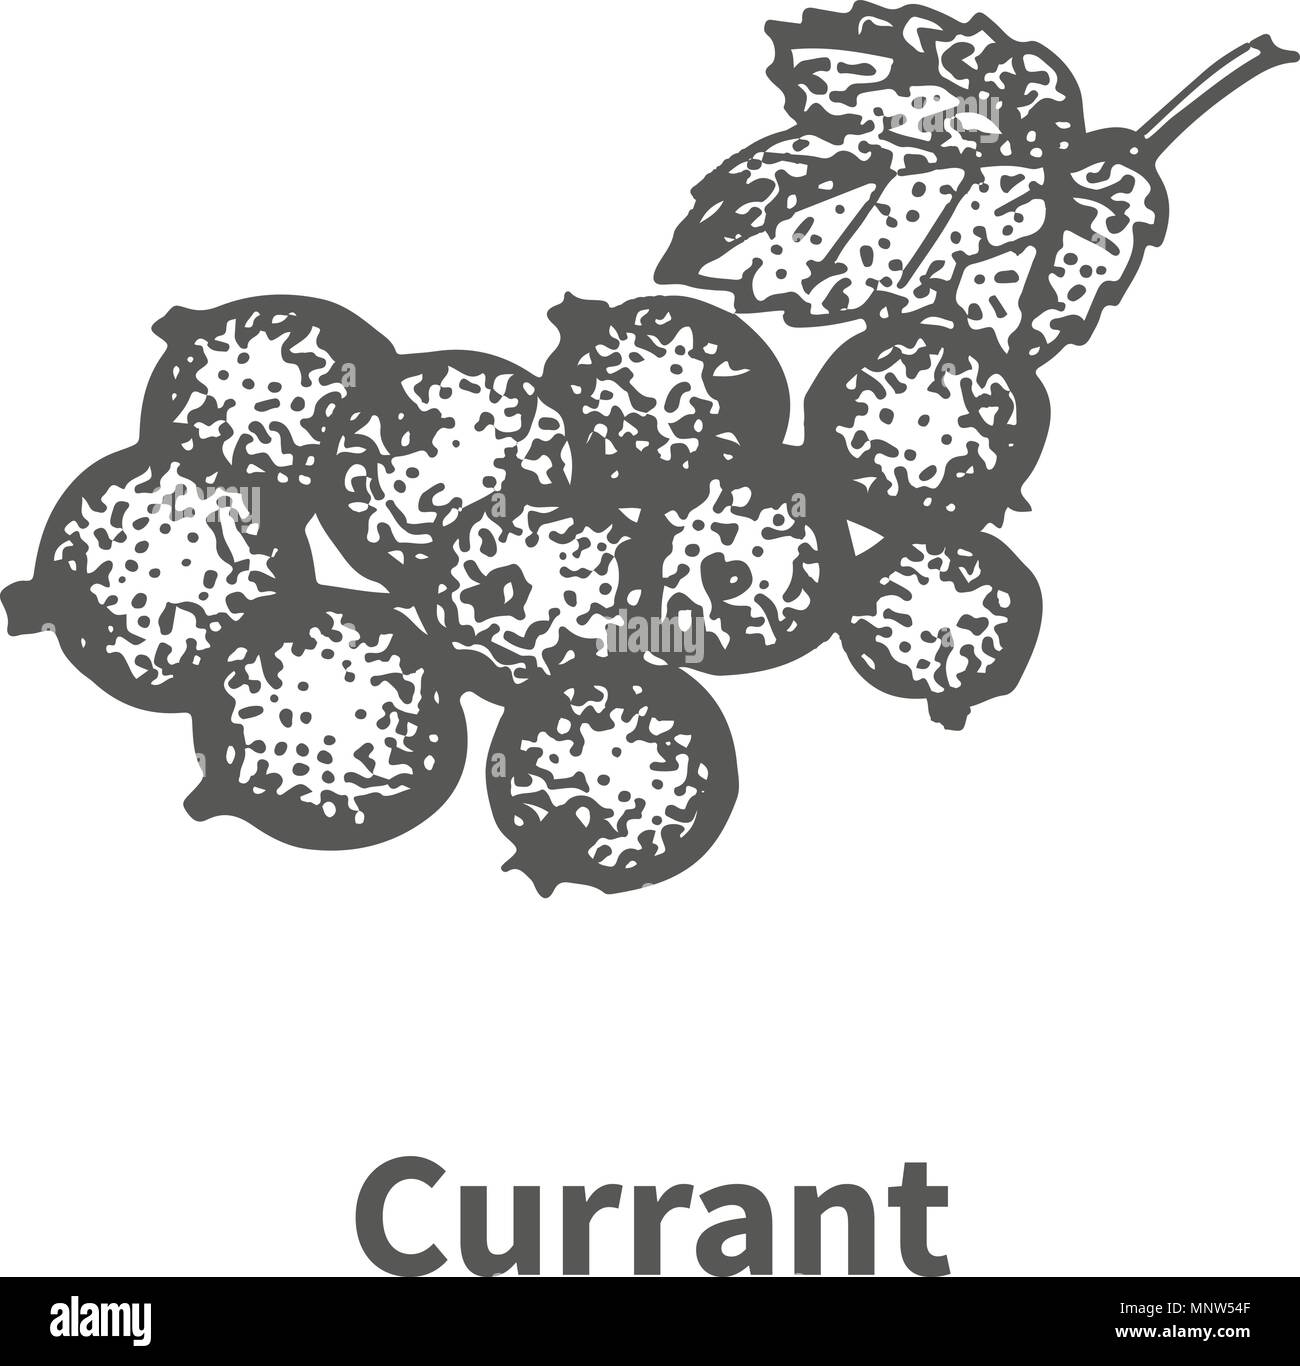 Vector illustration hand-drawn currant - Stock Image